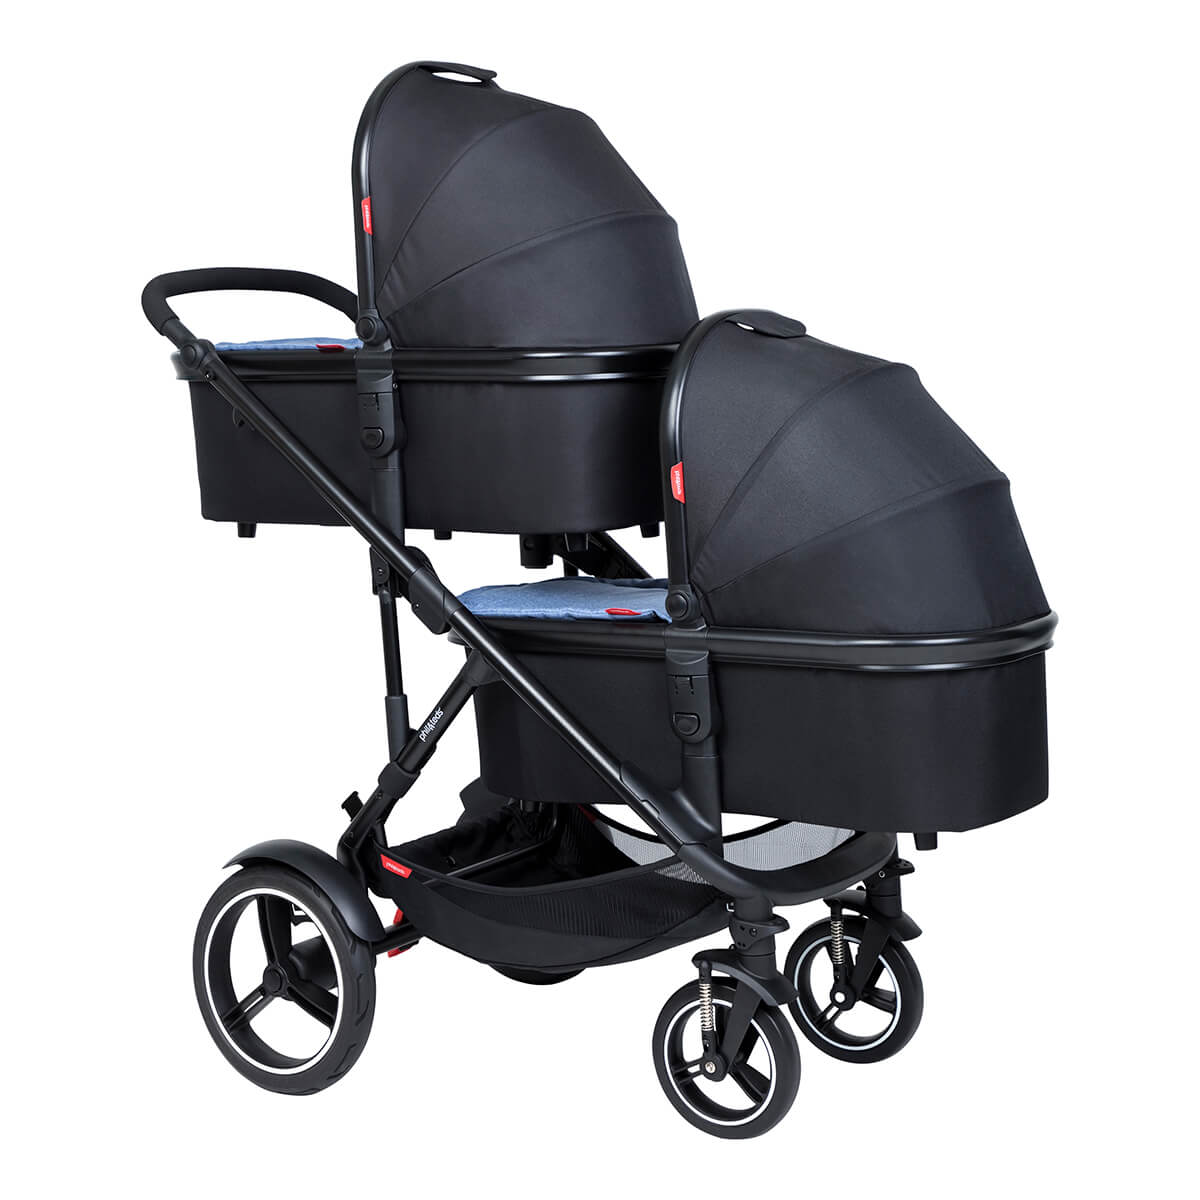 https://cdn.accentuate.io/4394883809385/19119322923113/philteds-voyager-inline-buggy-with-double-snug-carrycots-v1633400487119.jpg?1200x1200